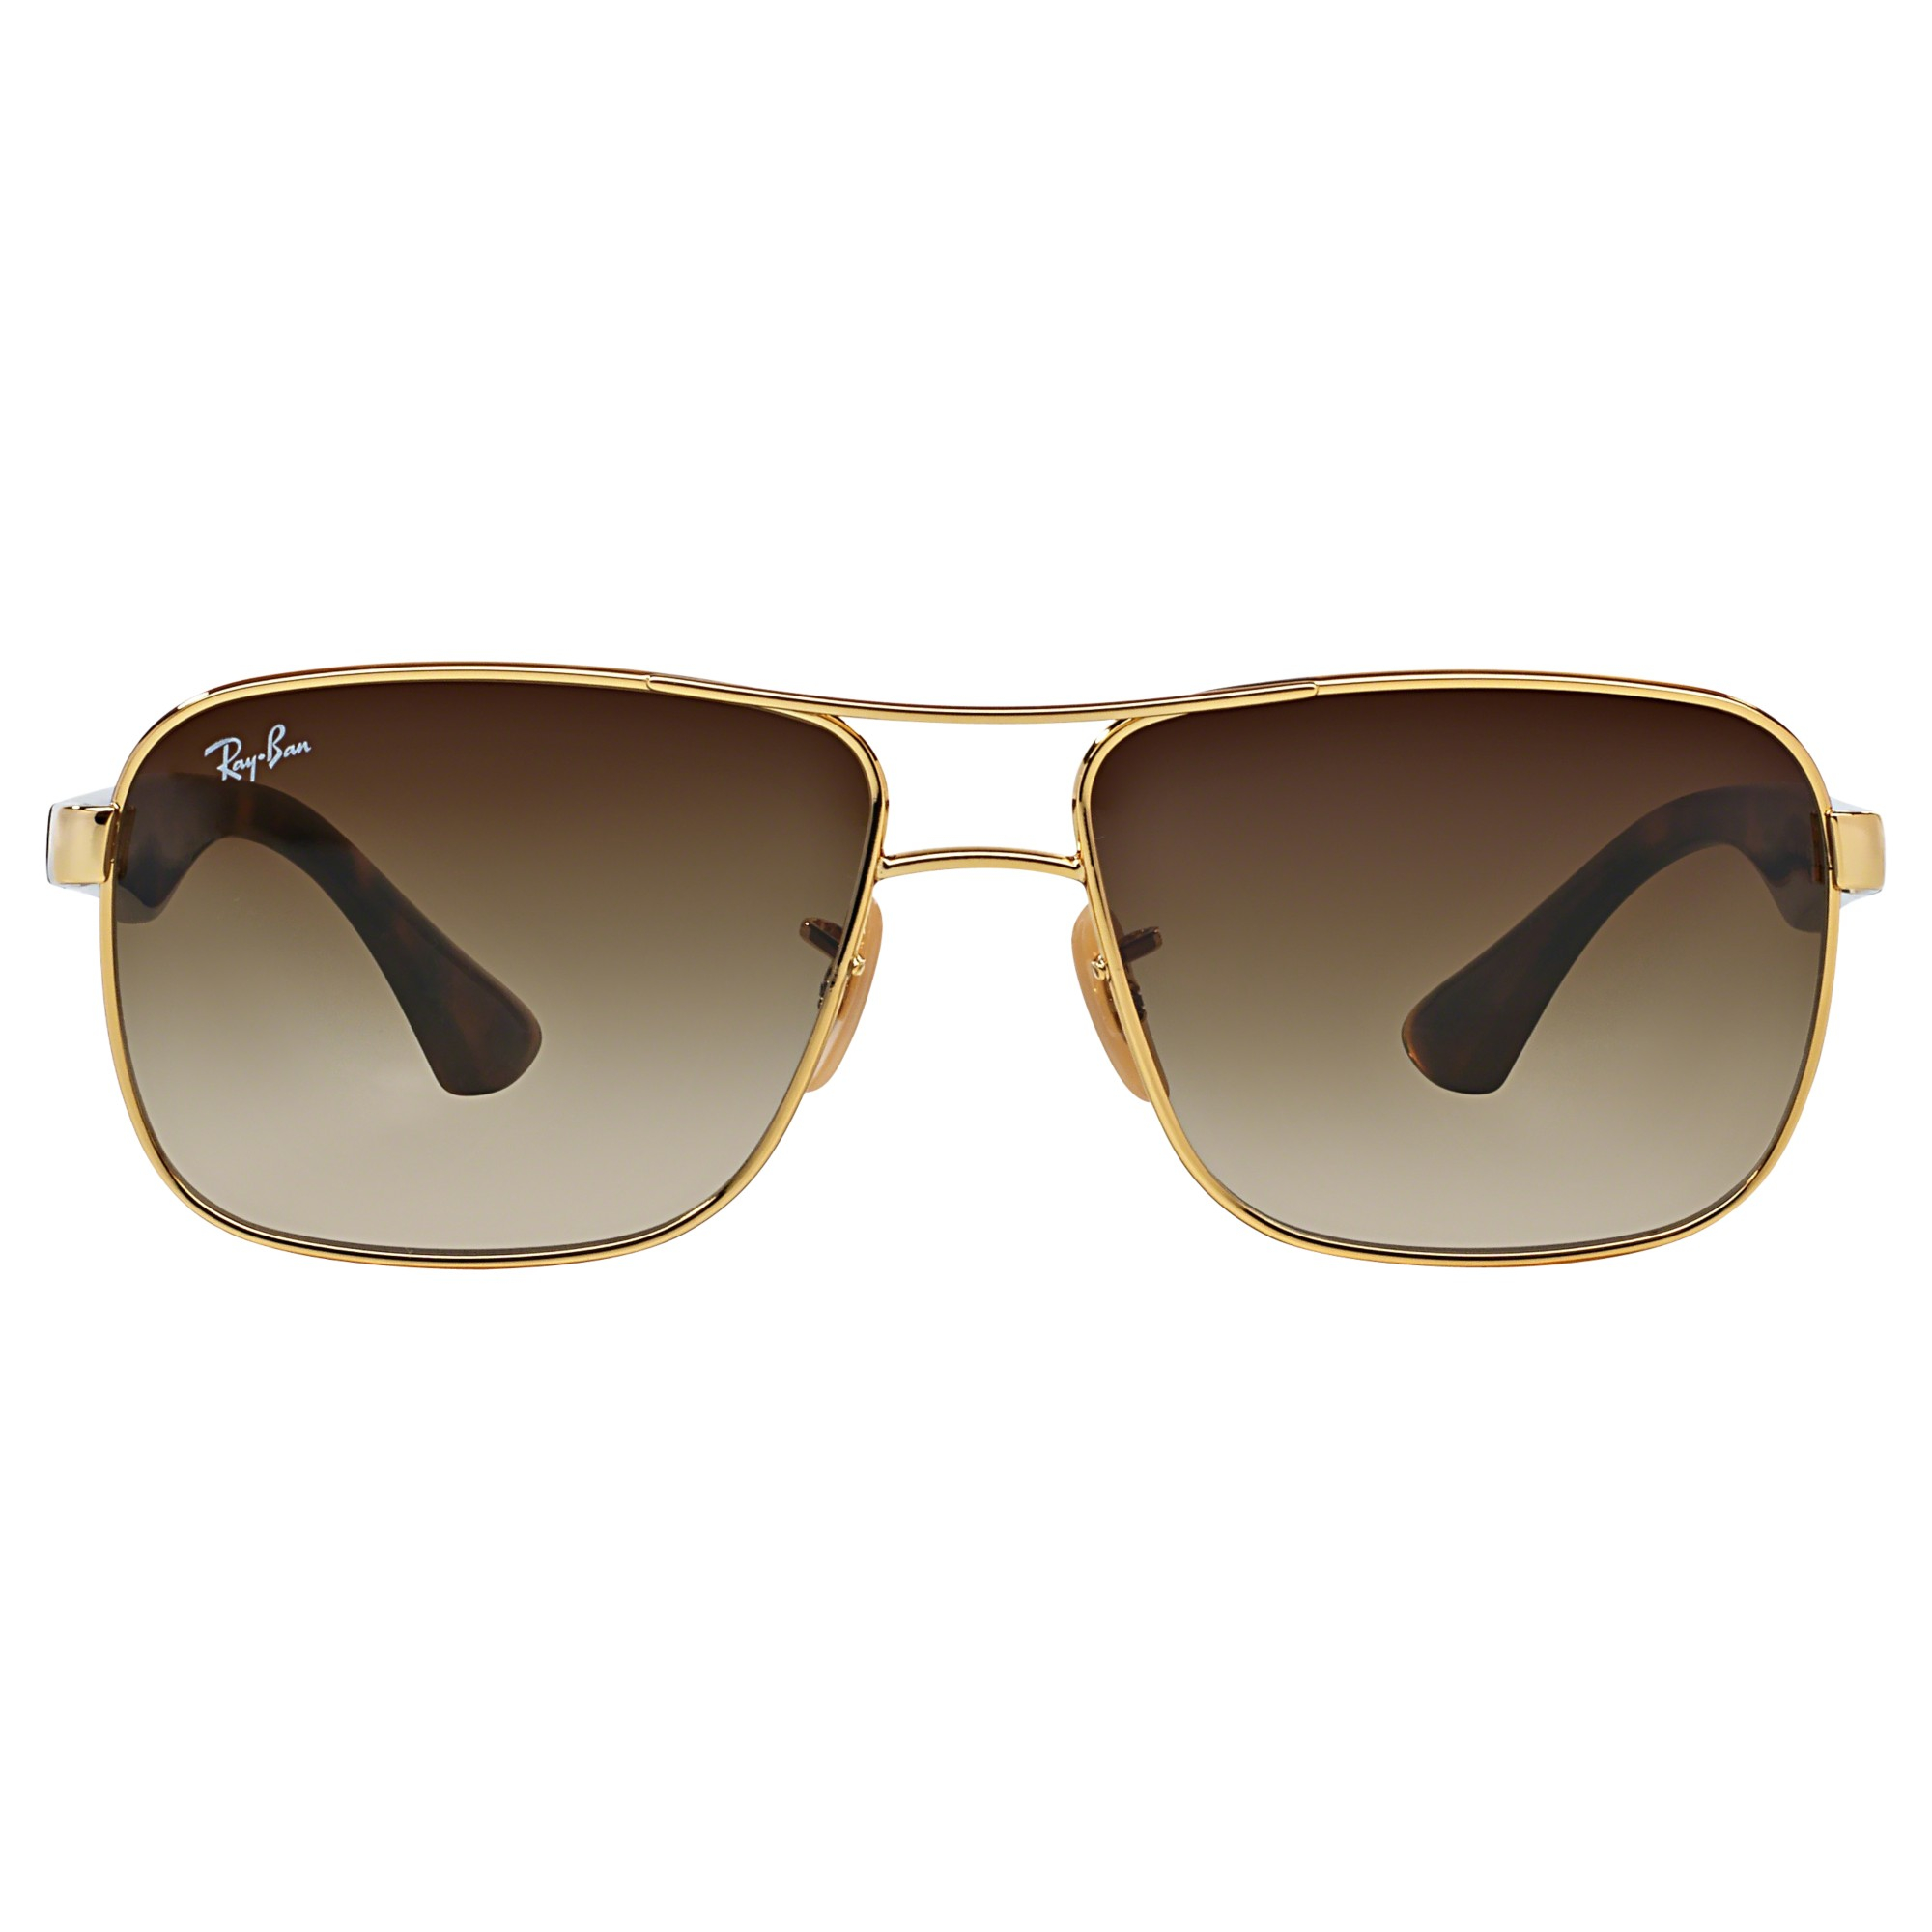 Ray-Ban Rb3516 Square Frame Sunglasses in Metallic - Lyst